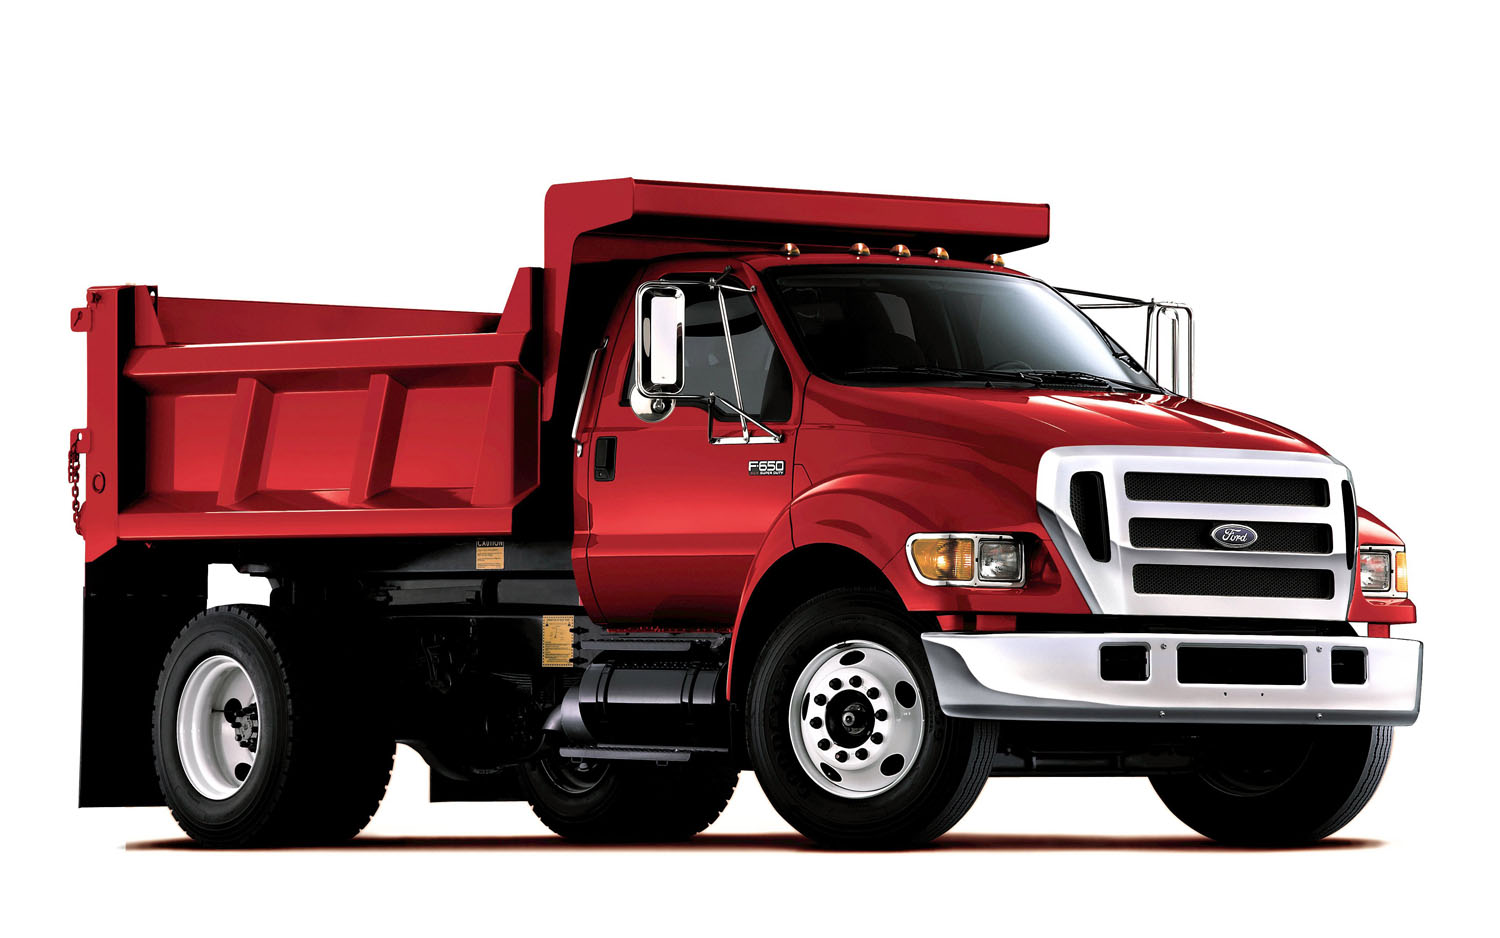 2007 Ford F-650 #11